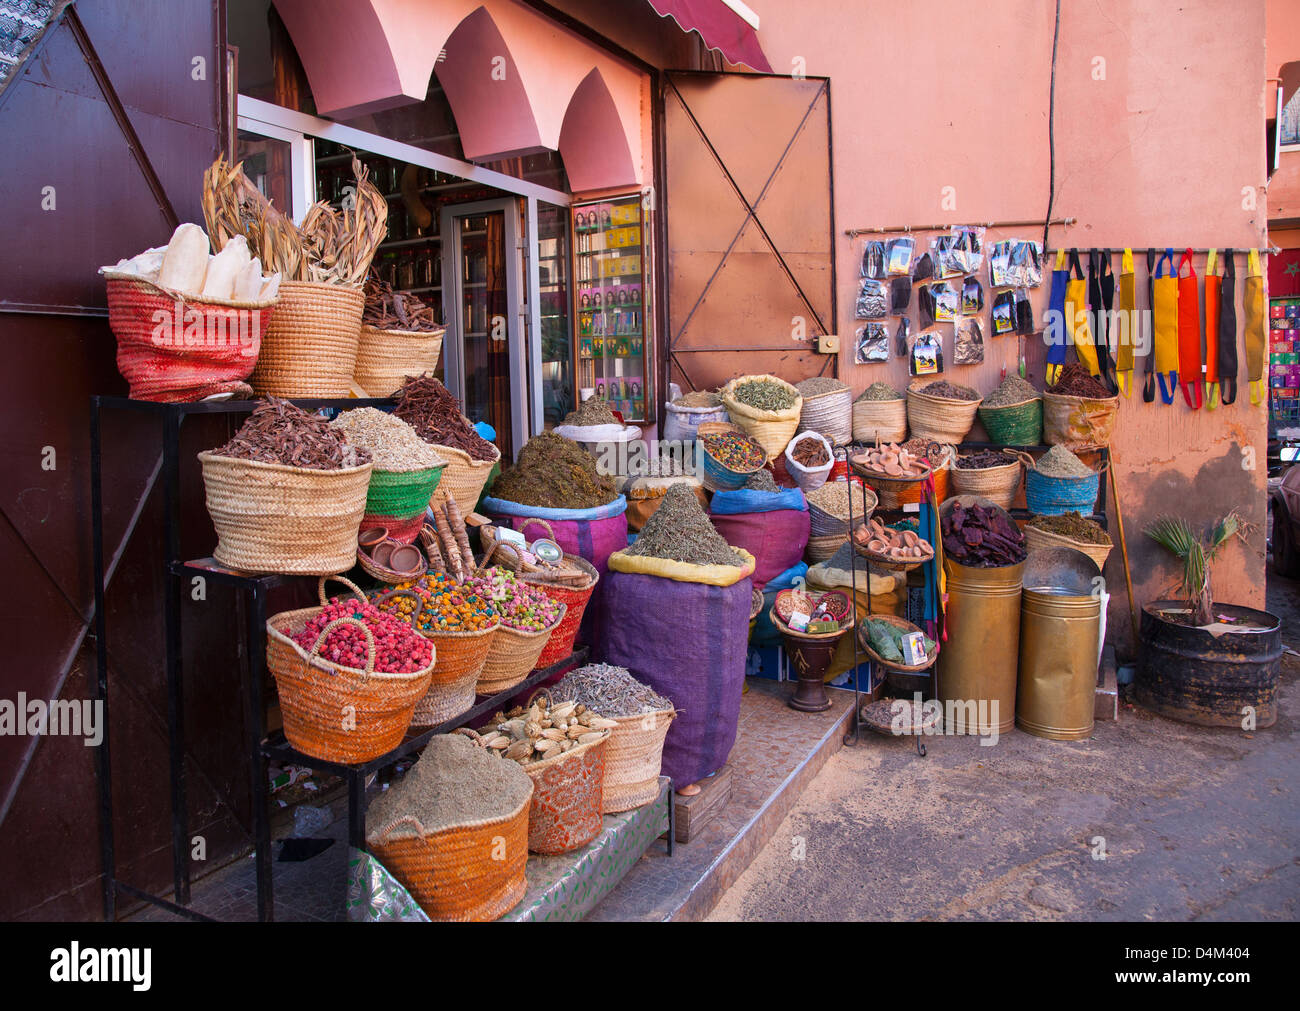 Baskets of food for sale at store - Stock Image